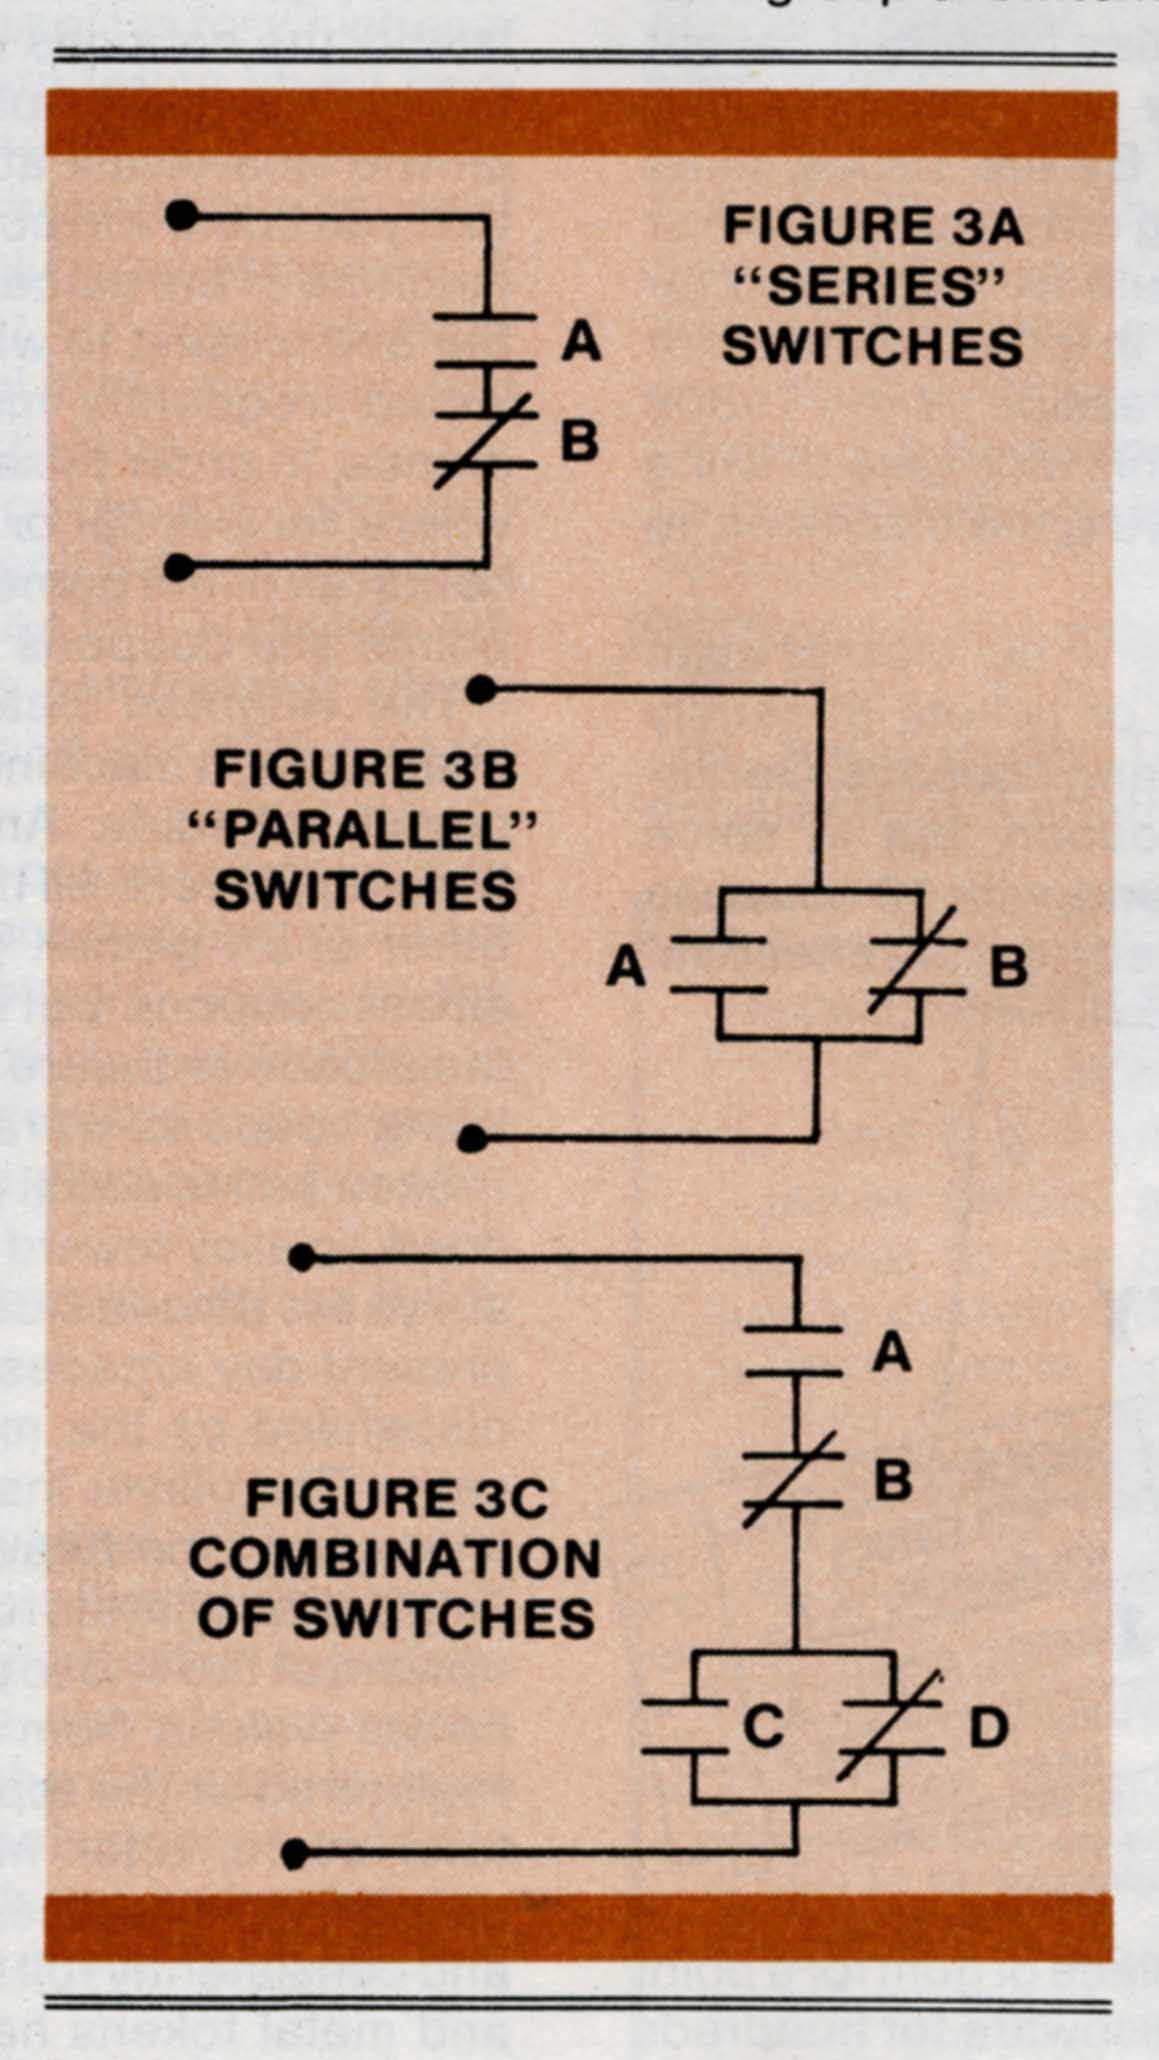 Series Circuit Definition For Kids The Figure Shows Two Circuits